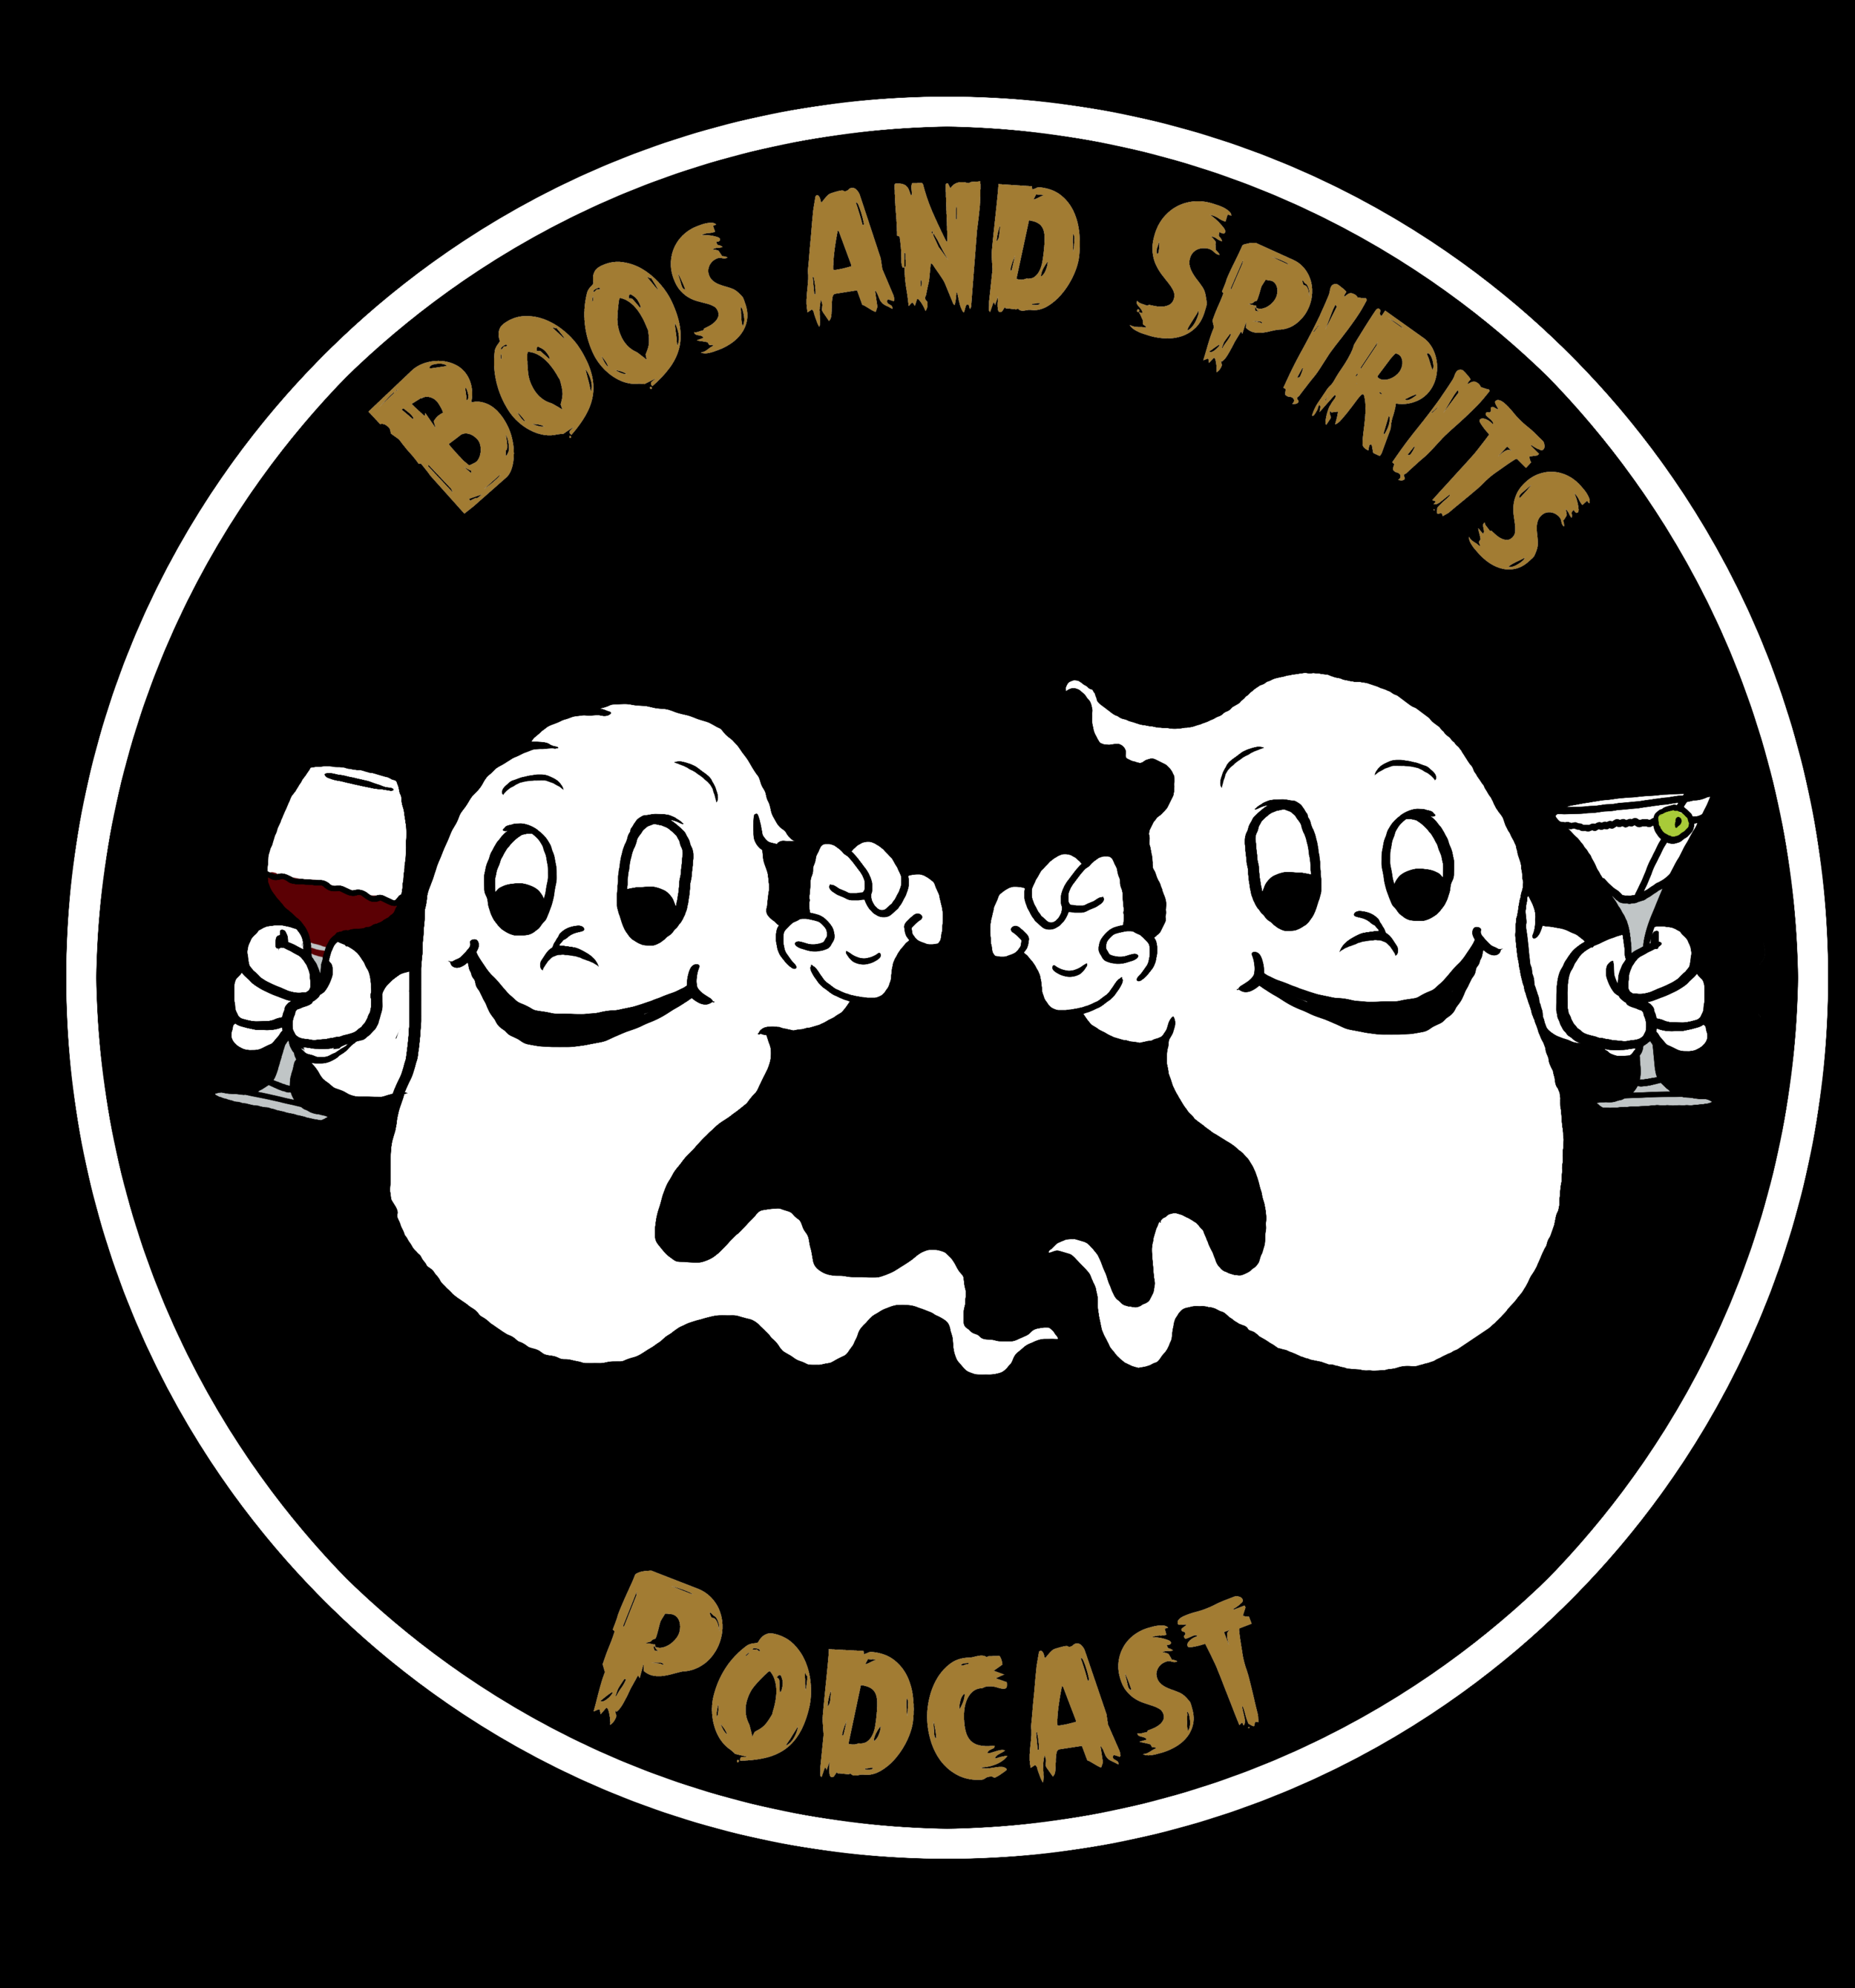 Boos_and_Spirits_Podcast_77_(1)a-1.png